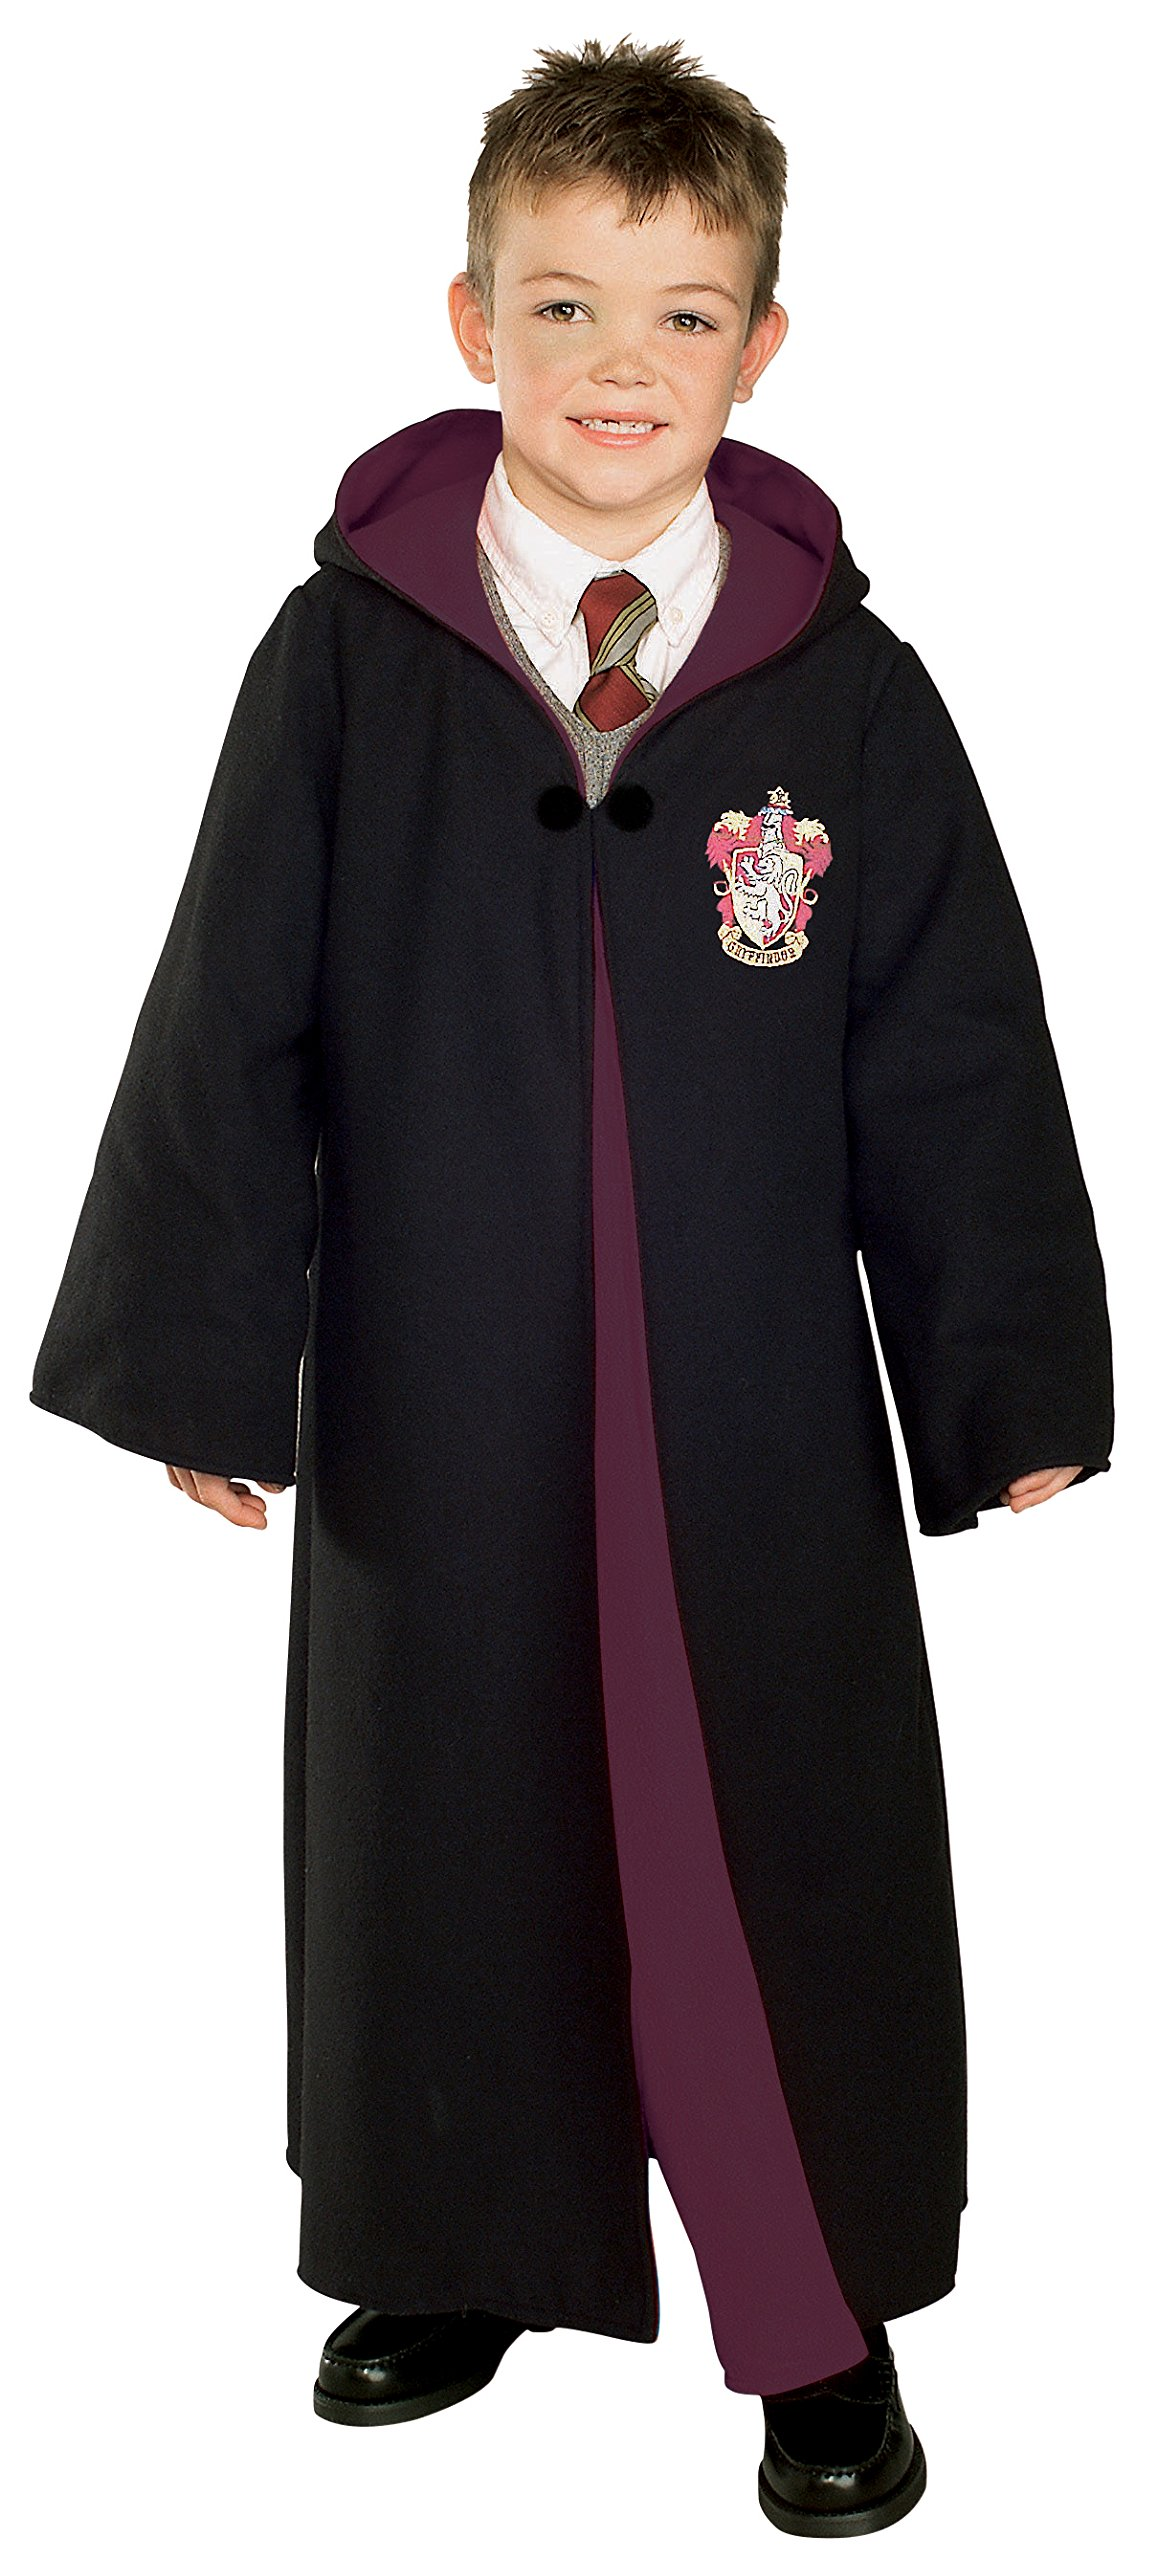 Rubie's Deluxe Harry Potter Child's Hermione Granger Costume Robe With Gryffindor Emblem, Large